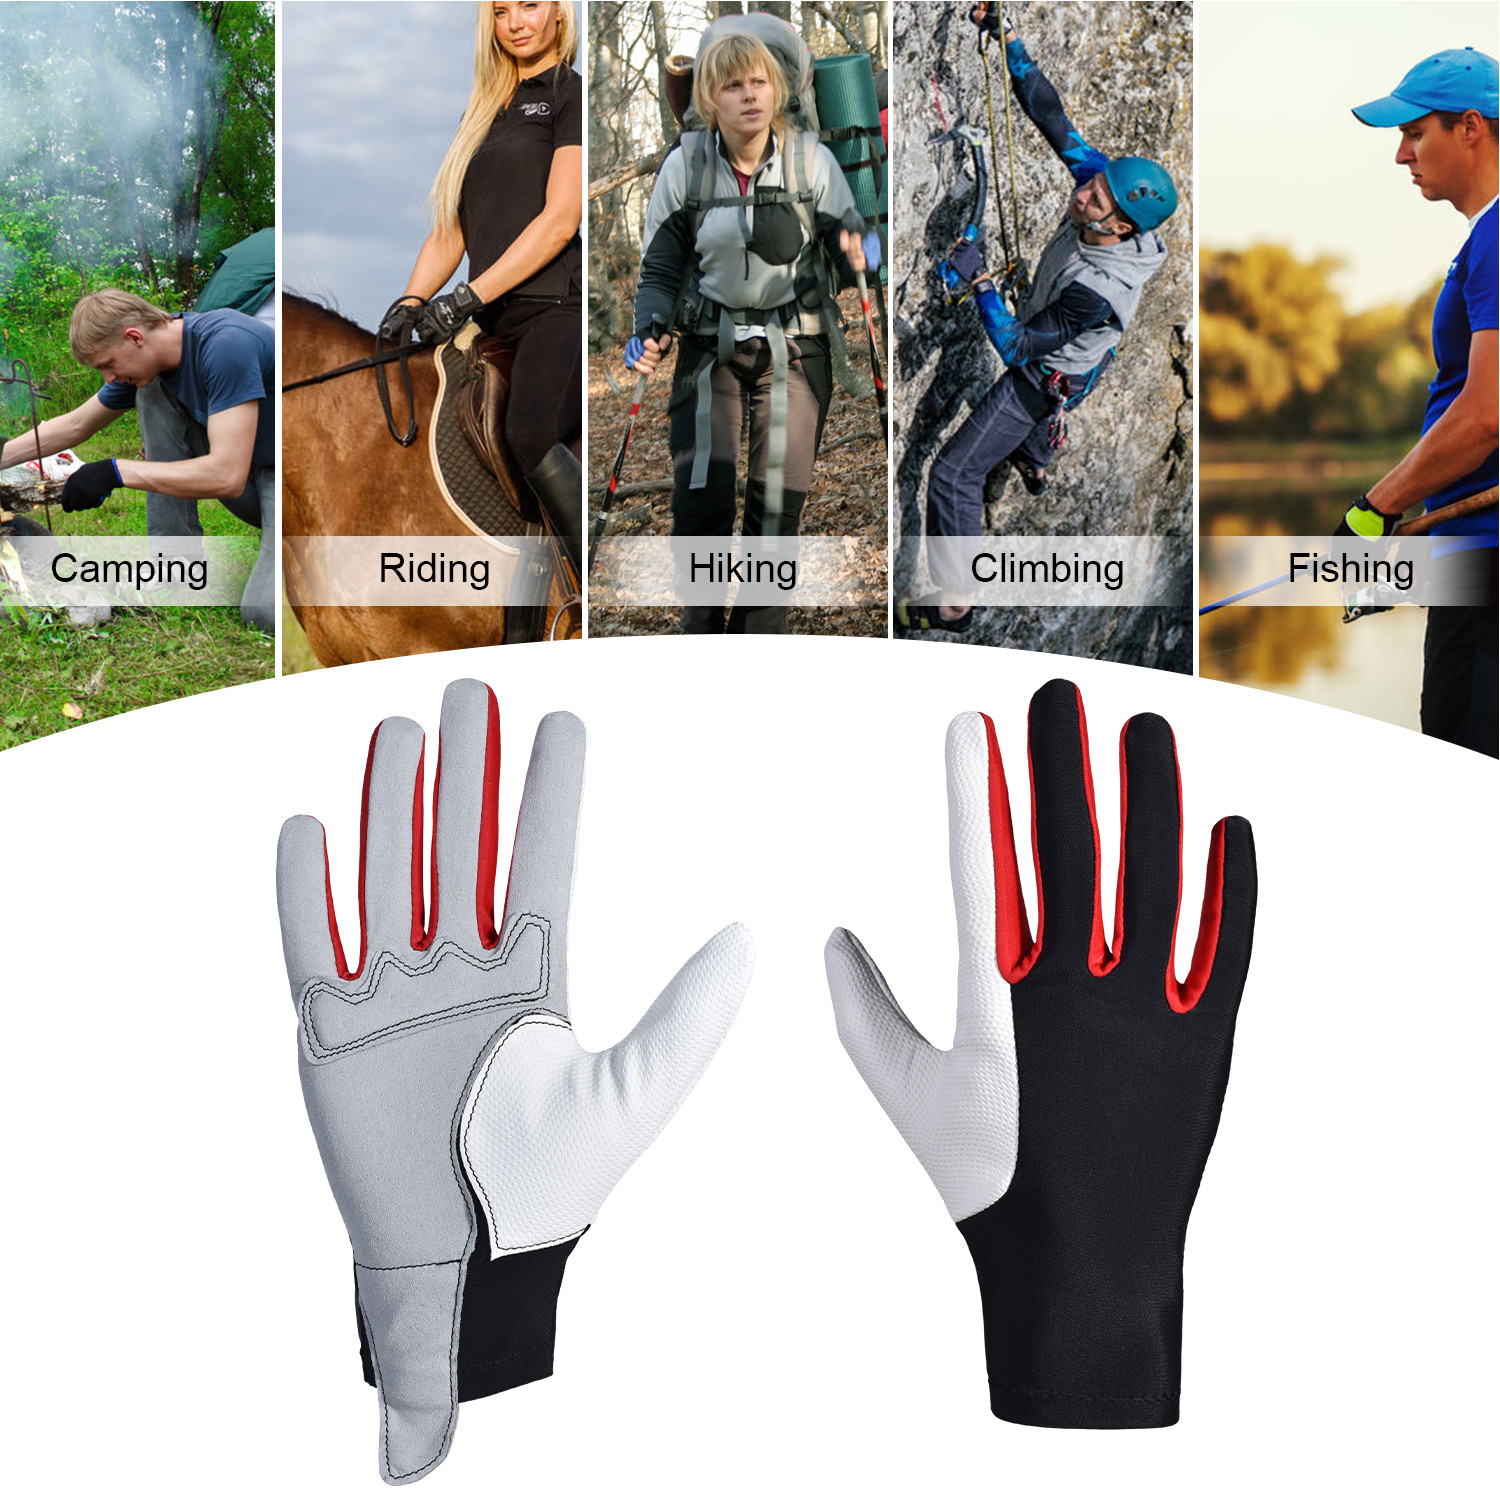 Professional Horse Riding Gloves For Horse Riding Men Women Equestrian Horseback Riding Gloves